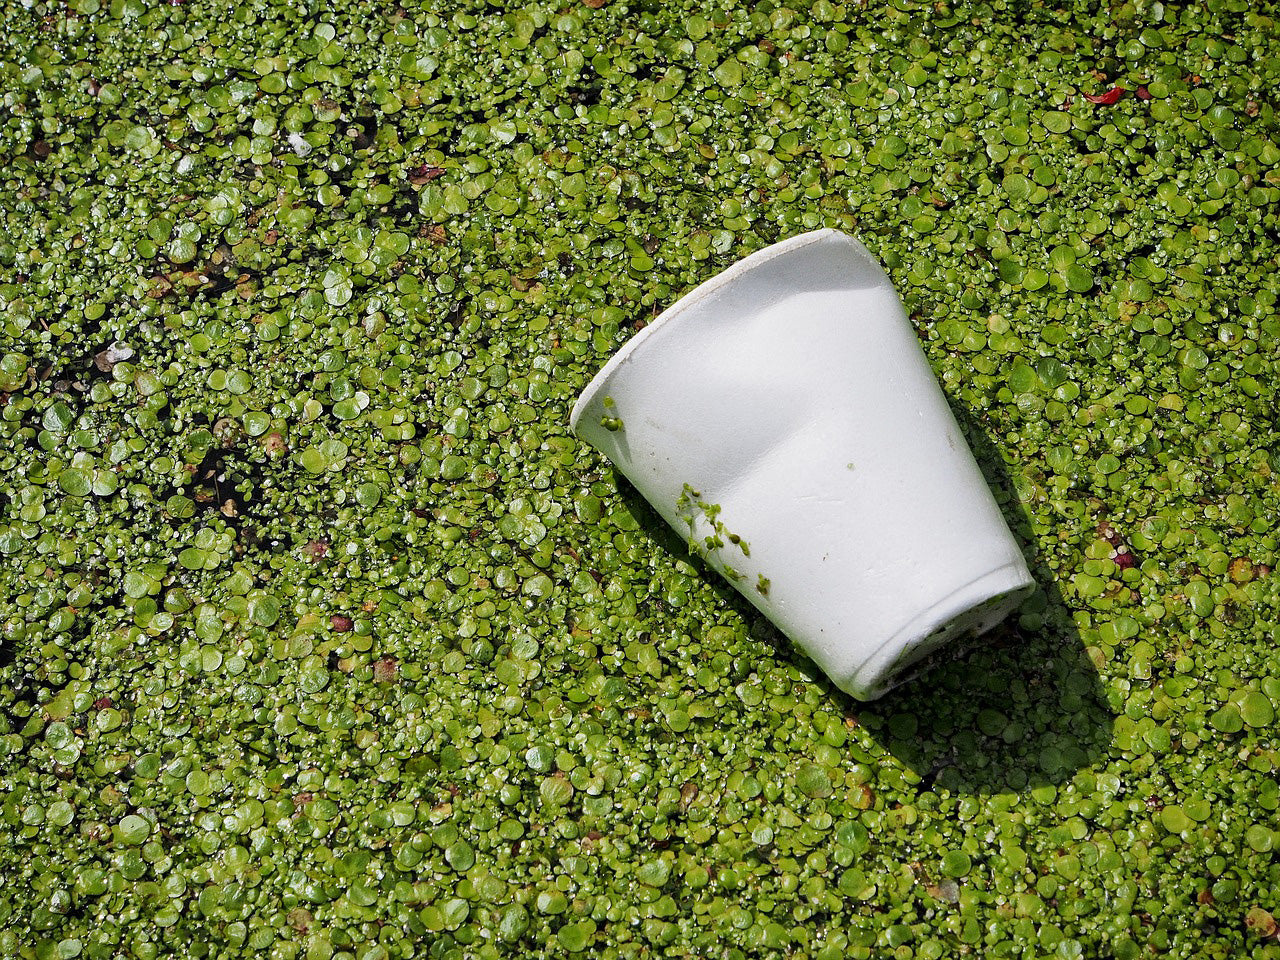 Discarded styrofoam cup